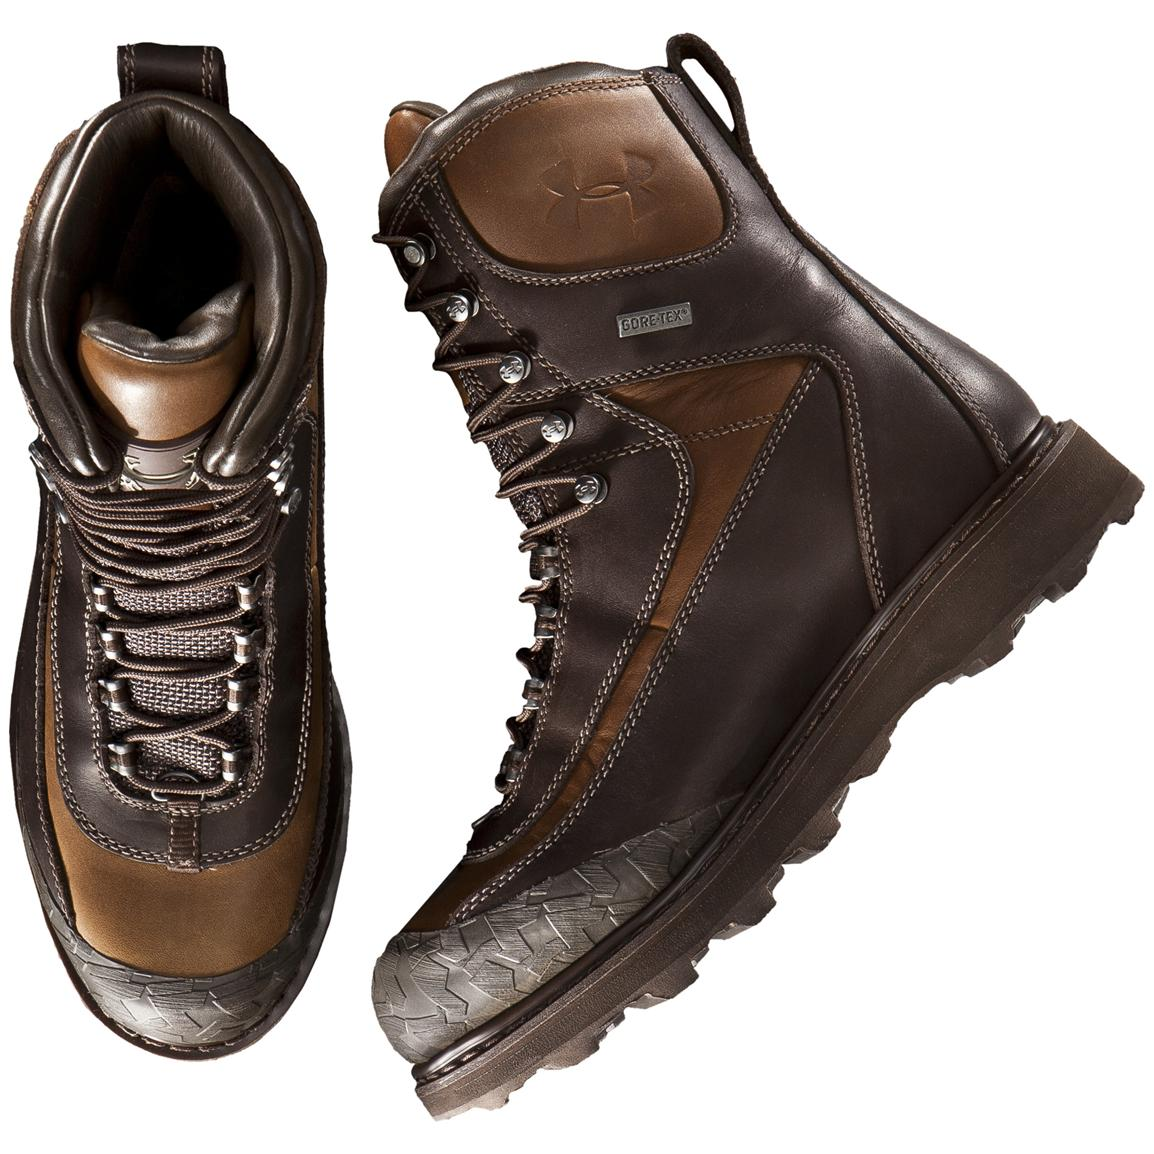 Under armour caliber boots 206594 hunting boots at for Under armour fishing shoes